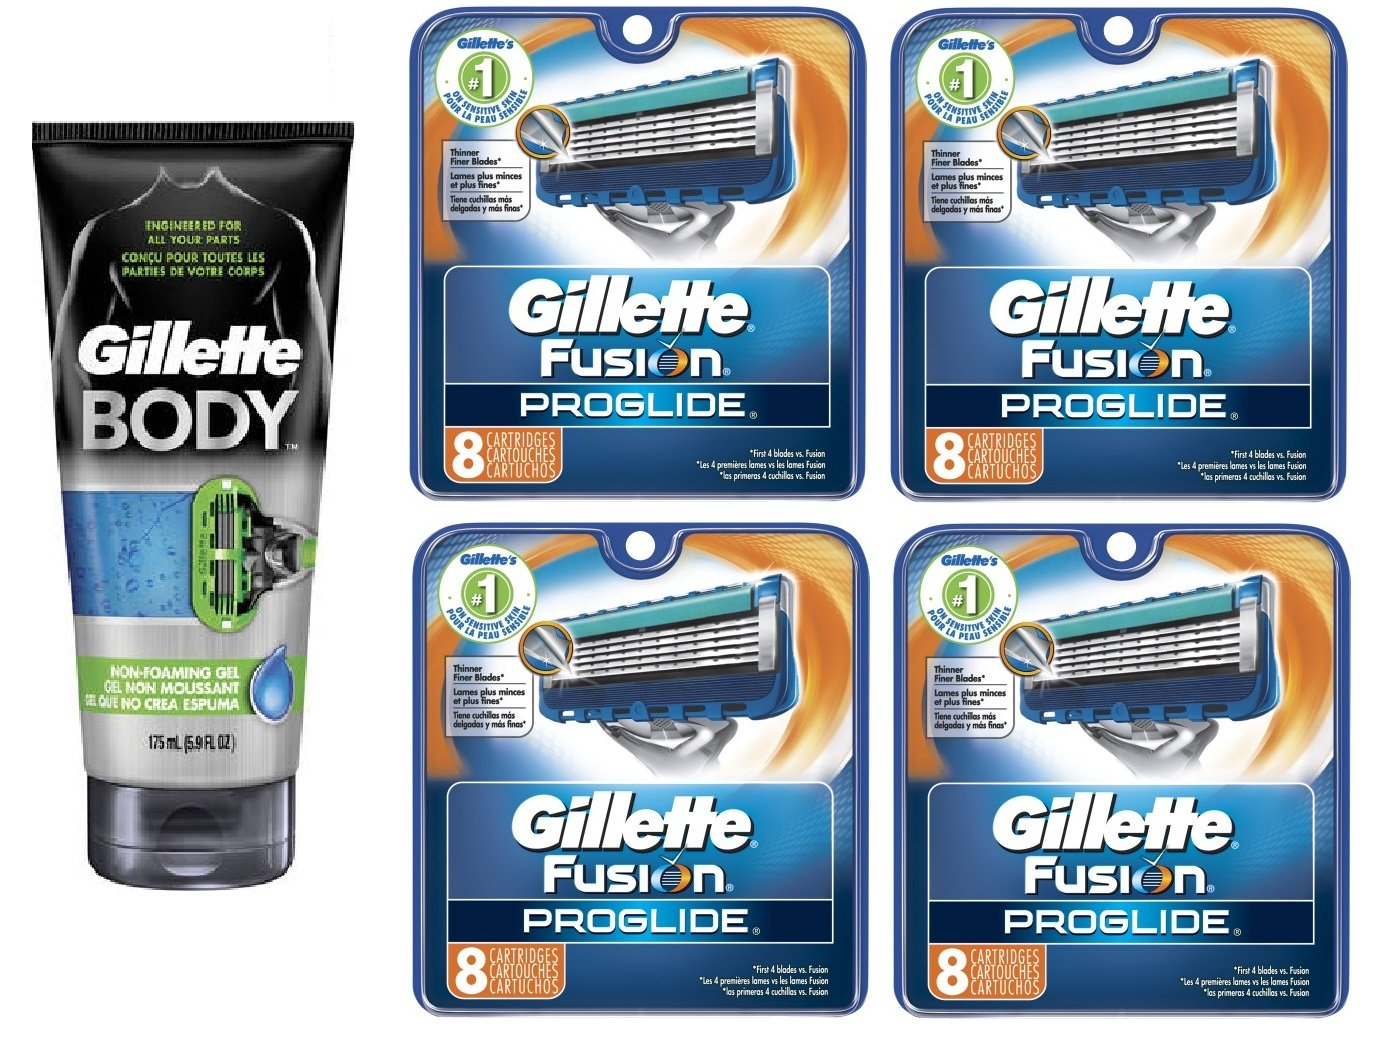 Gillette Body Non Foaming Shave Gel for Men, 5.9 Fl Oz + Fusion Proglide Refill Blades 8 Ct (4 Pack) + FREE Luxury Luffa Loofah Bath Sponge On A Rope, Color May Vary